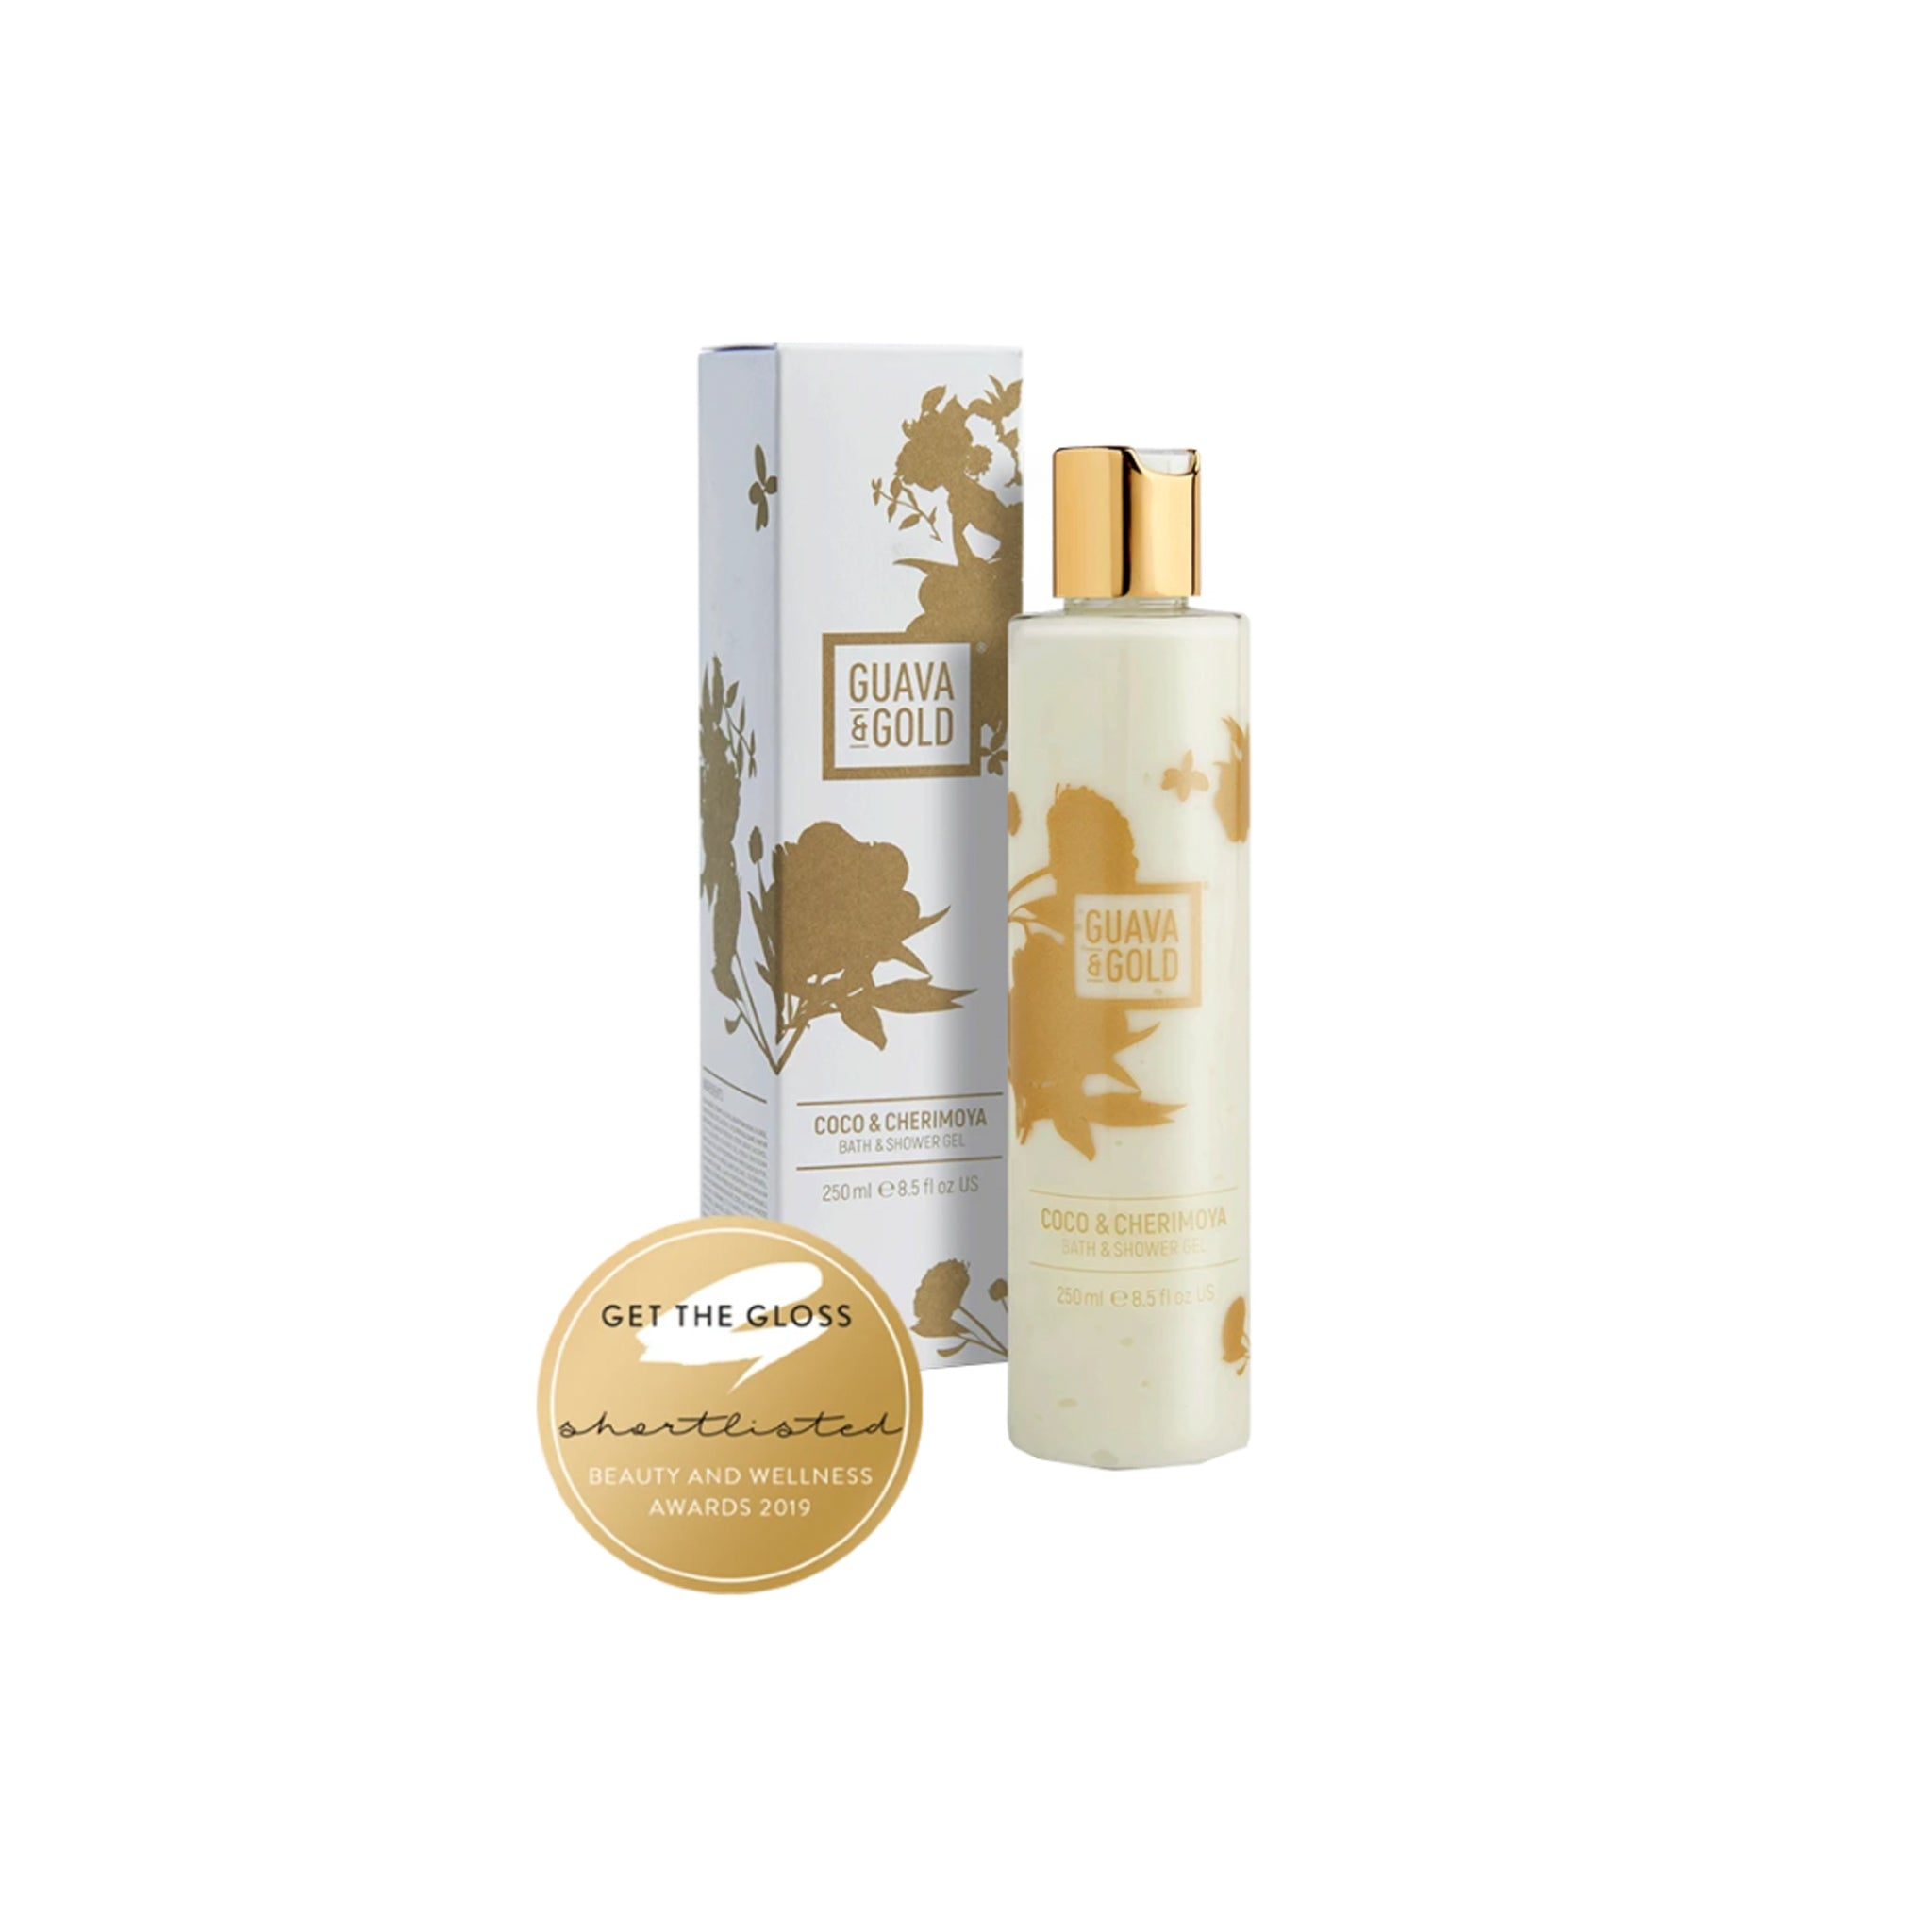 white and gold printed bottle and box of Bath and Shower gel by Guava and Gold